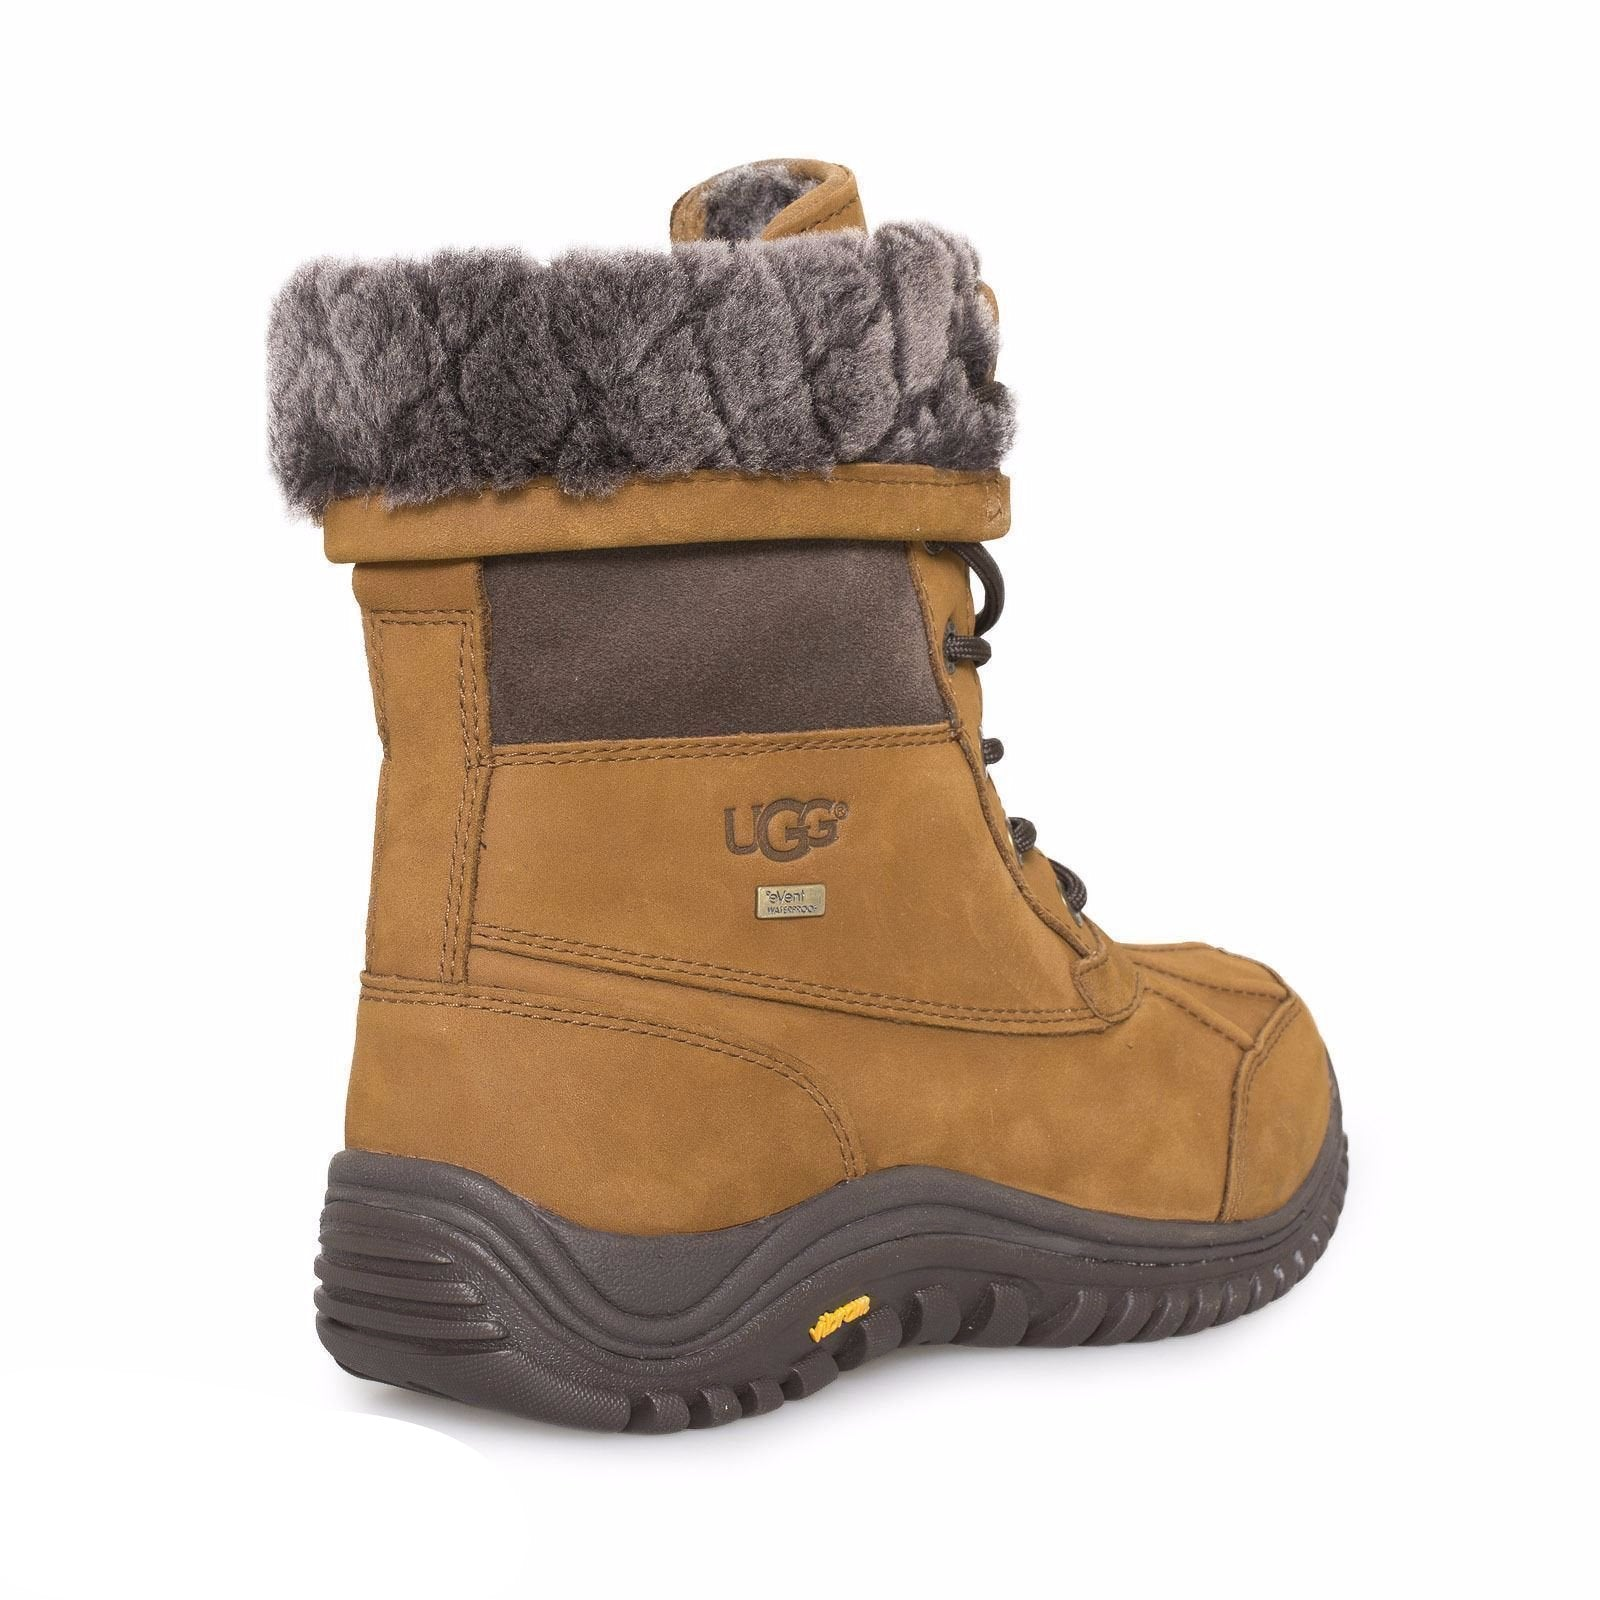 09f70394615 UGG Adirondack II Luxe Quilt Chestnut Boots